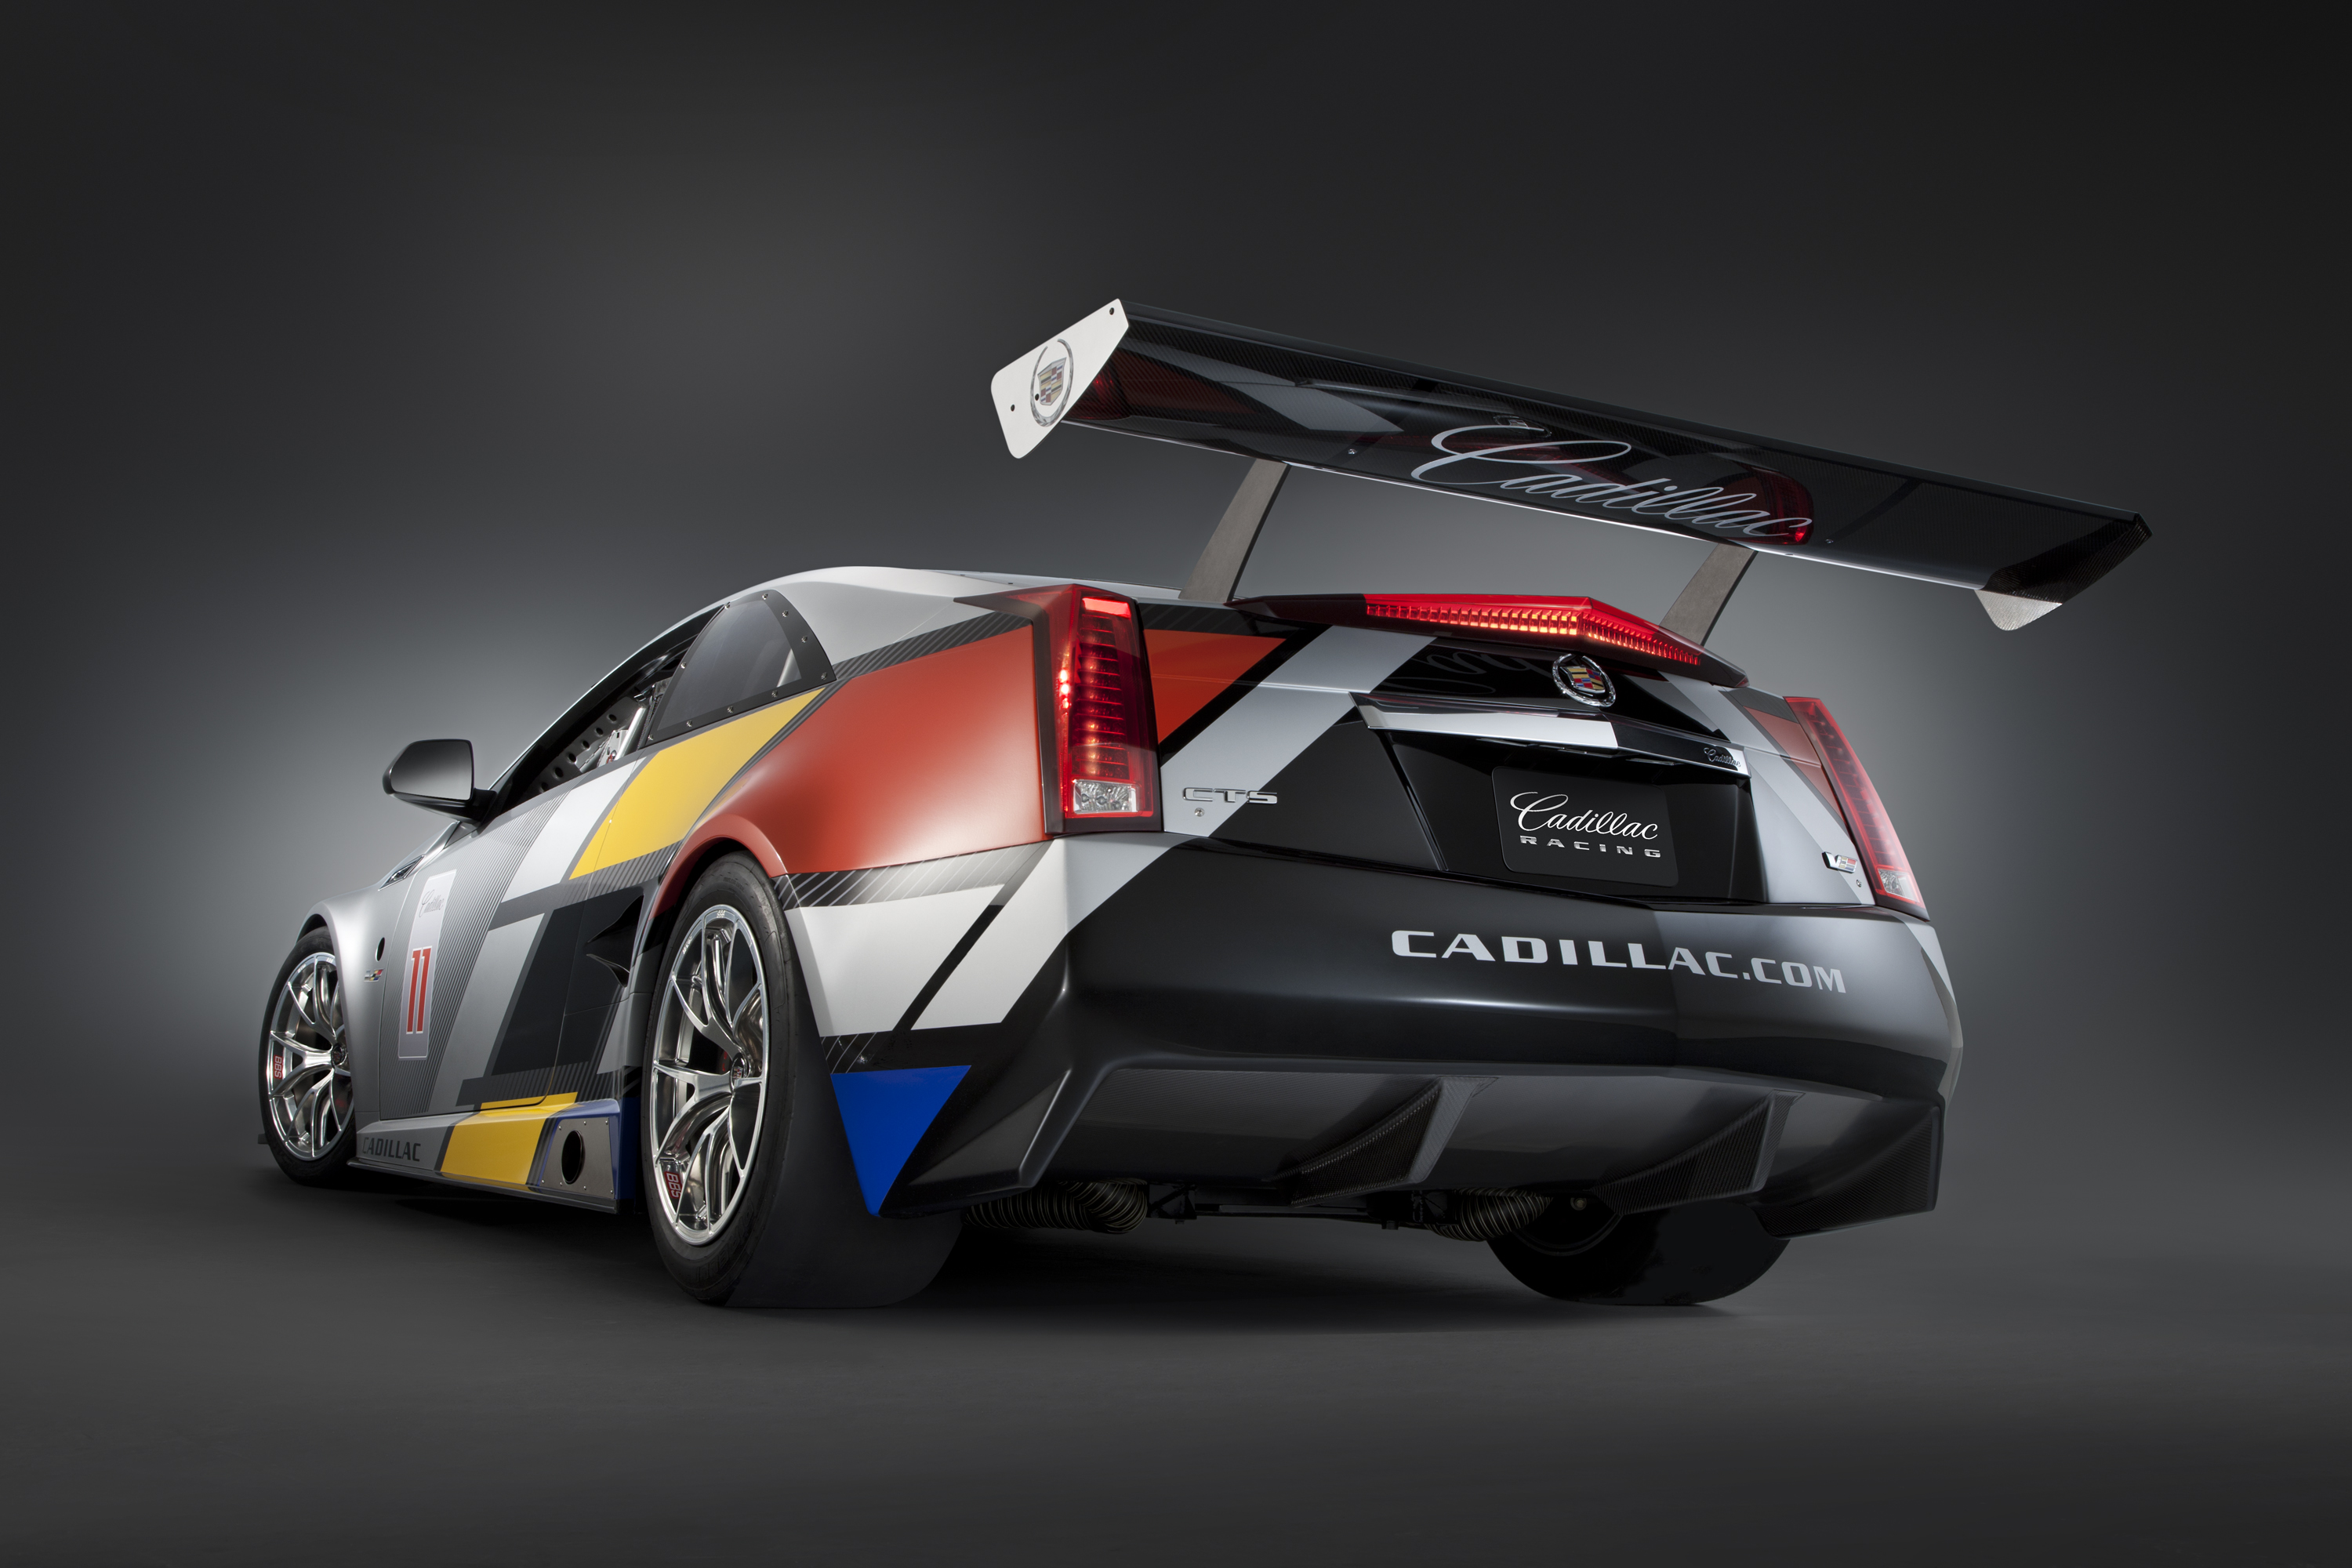 Cadillac Racing Returns to Sebring with CTS-V Coupe Racecars